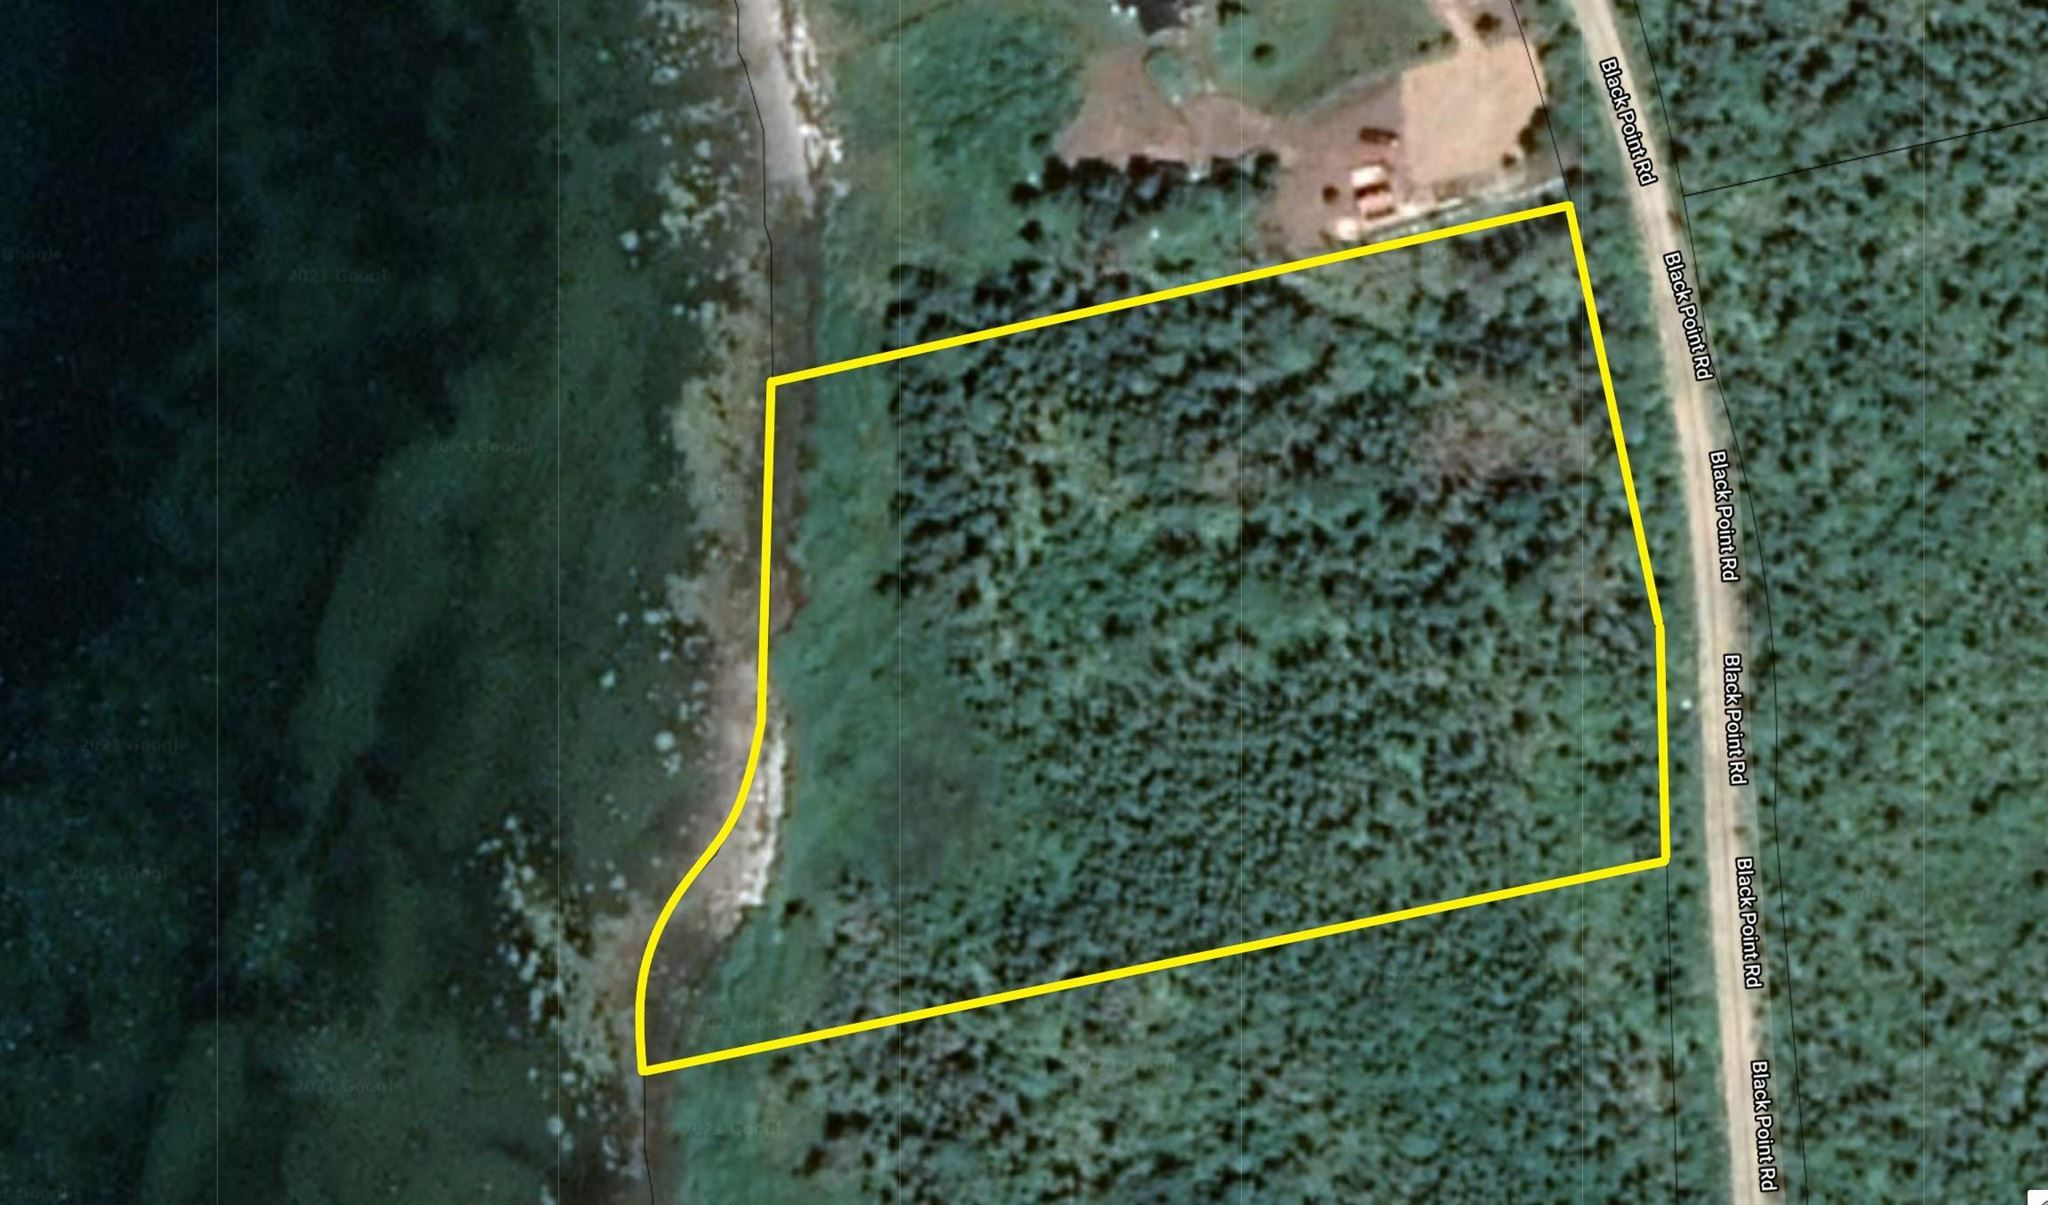 Main Photo: 618 Black Point Road in Ingomar: 407-Shelburne County Vacant Land for sale (South Shore)  : MLS®# 202114453